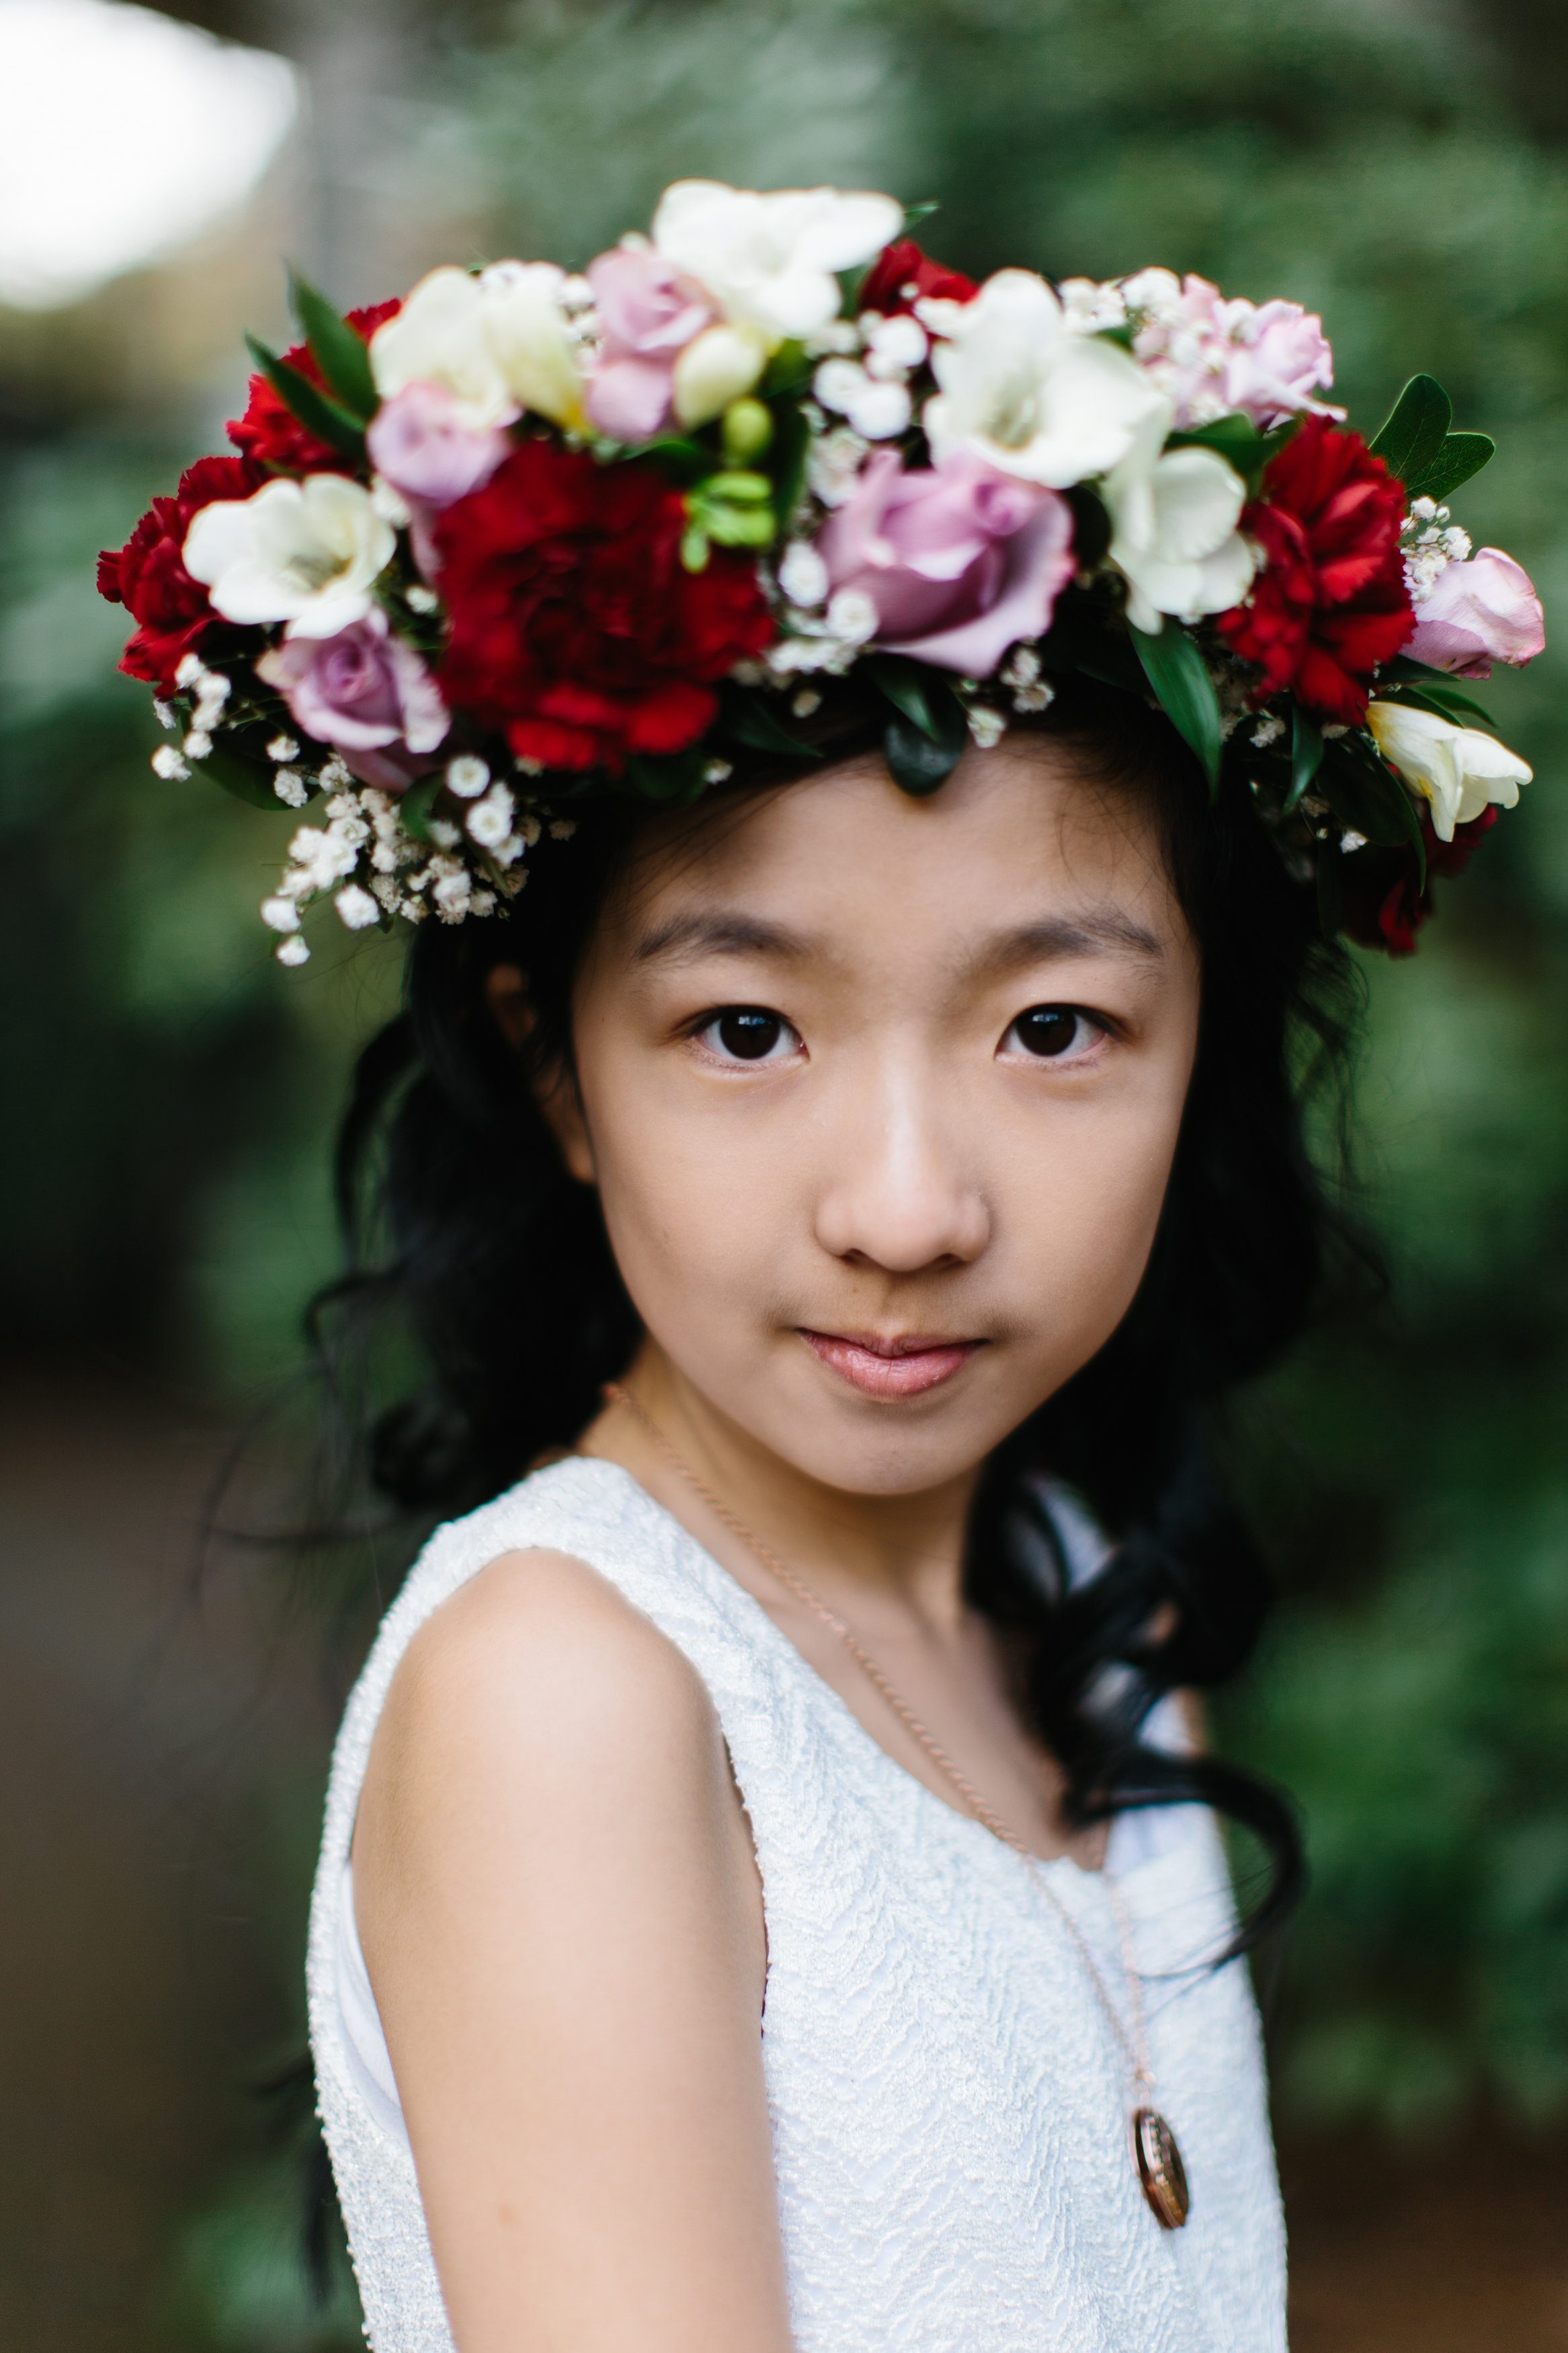 Flower Crown for Flower girl by Abbotsford Wedding Florist, Floral Design by Lili